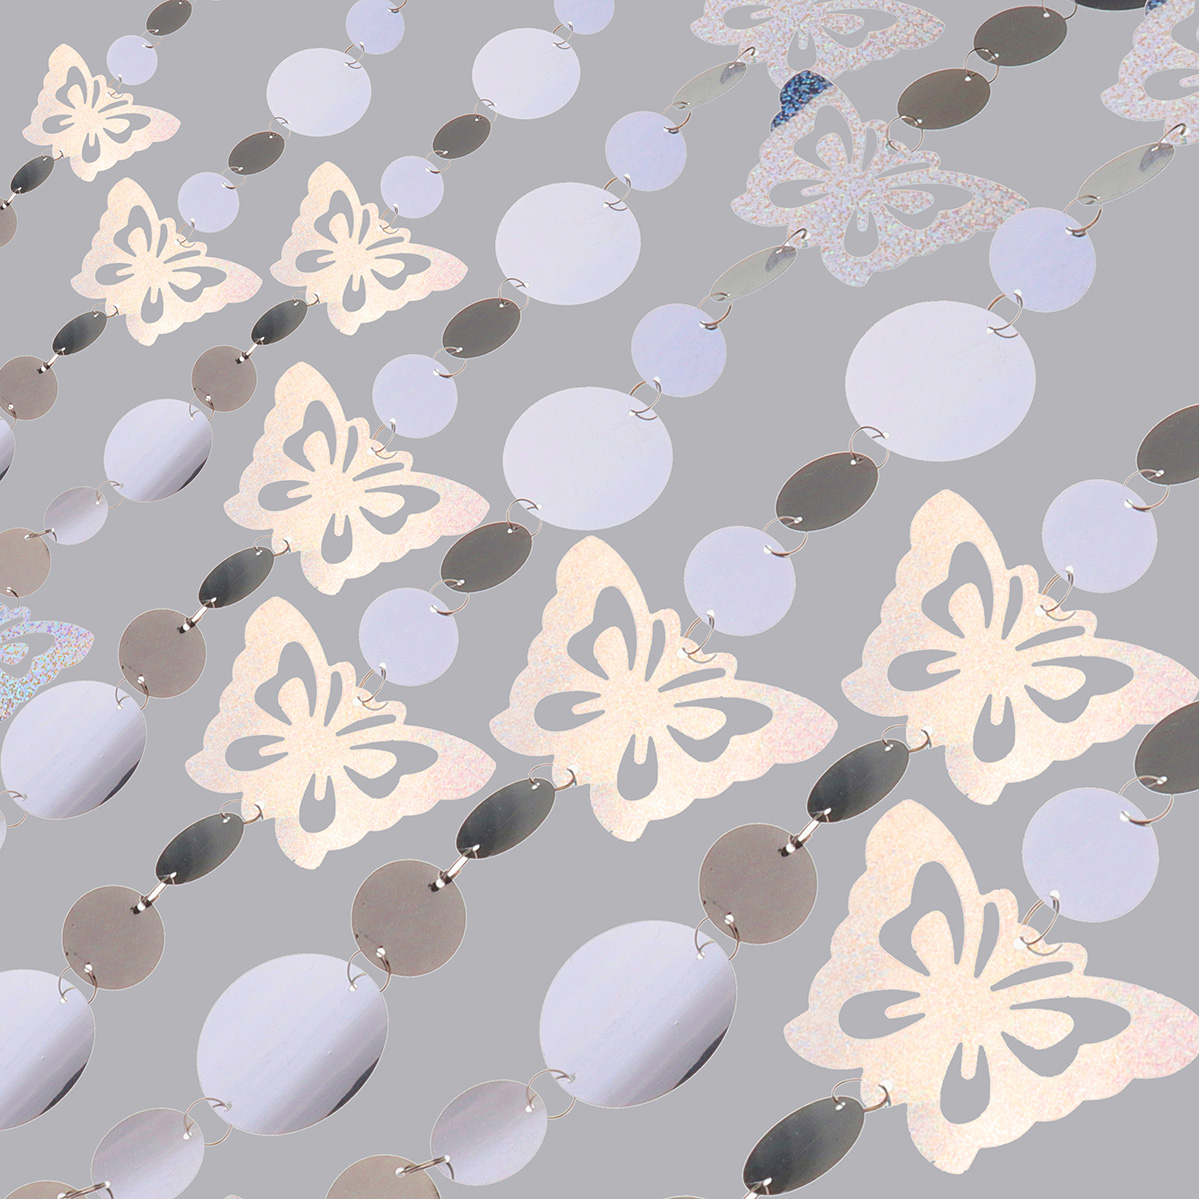 PVC Sequins Curtains Partition Hanging Party Pendant Ornaments Home Christmas Wedding Decorations Square Butterfly Pendants